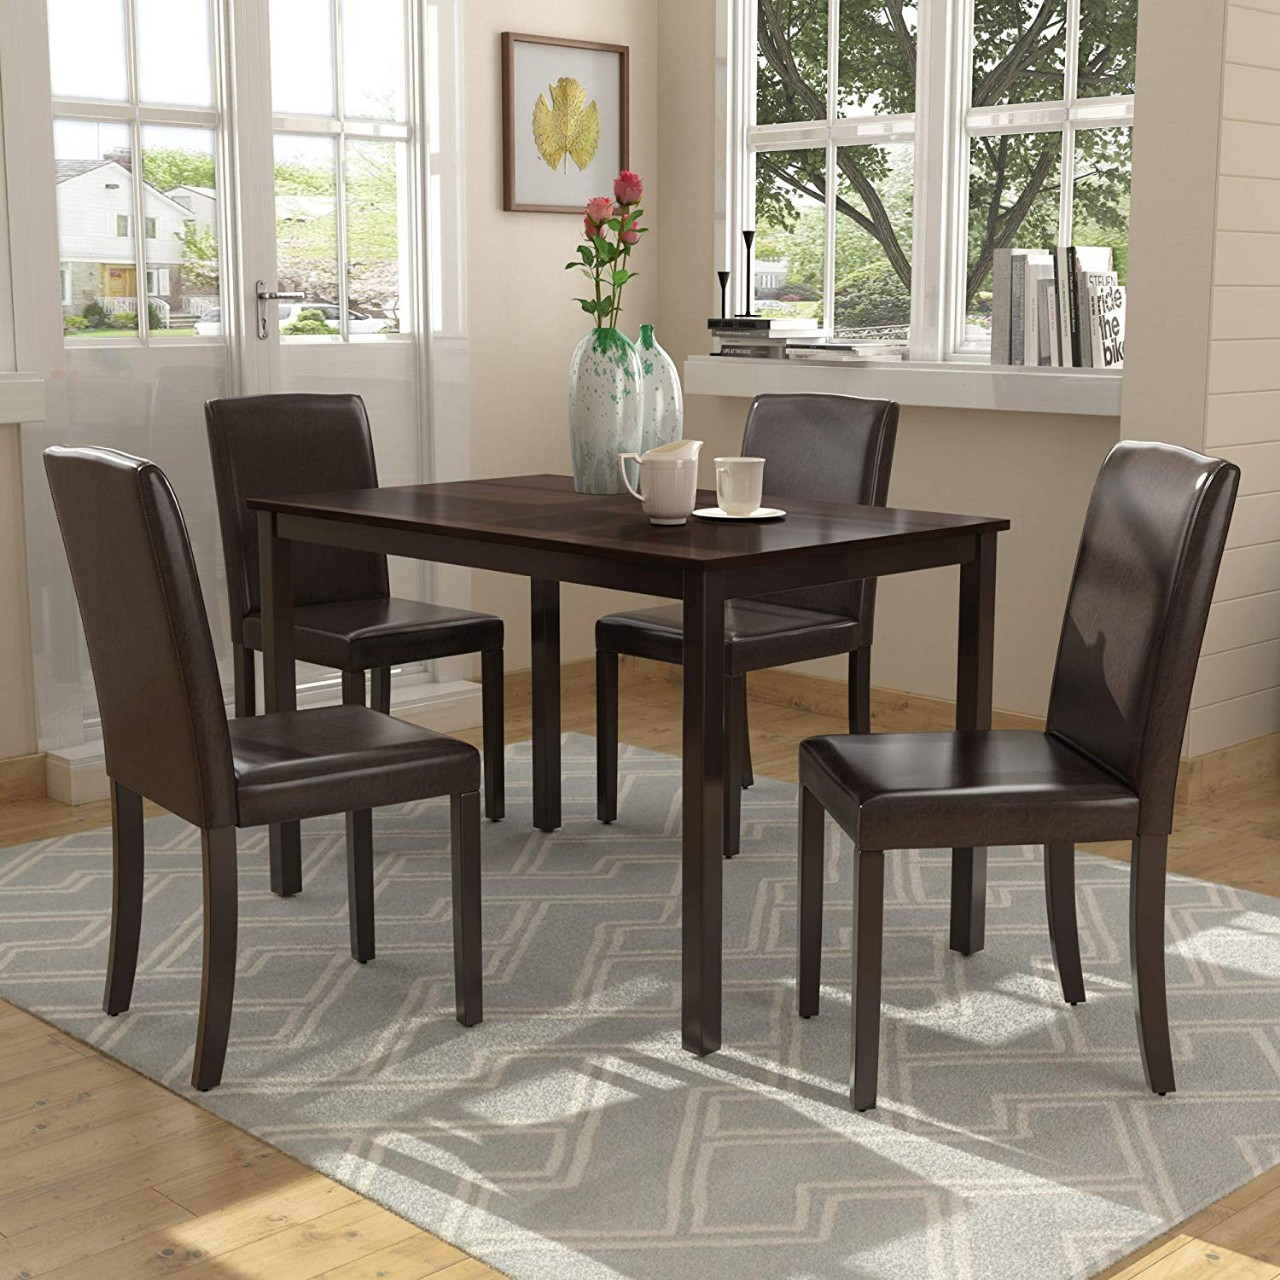 How to decorate a dining room table and chair?